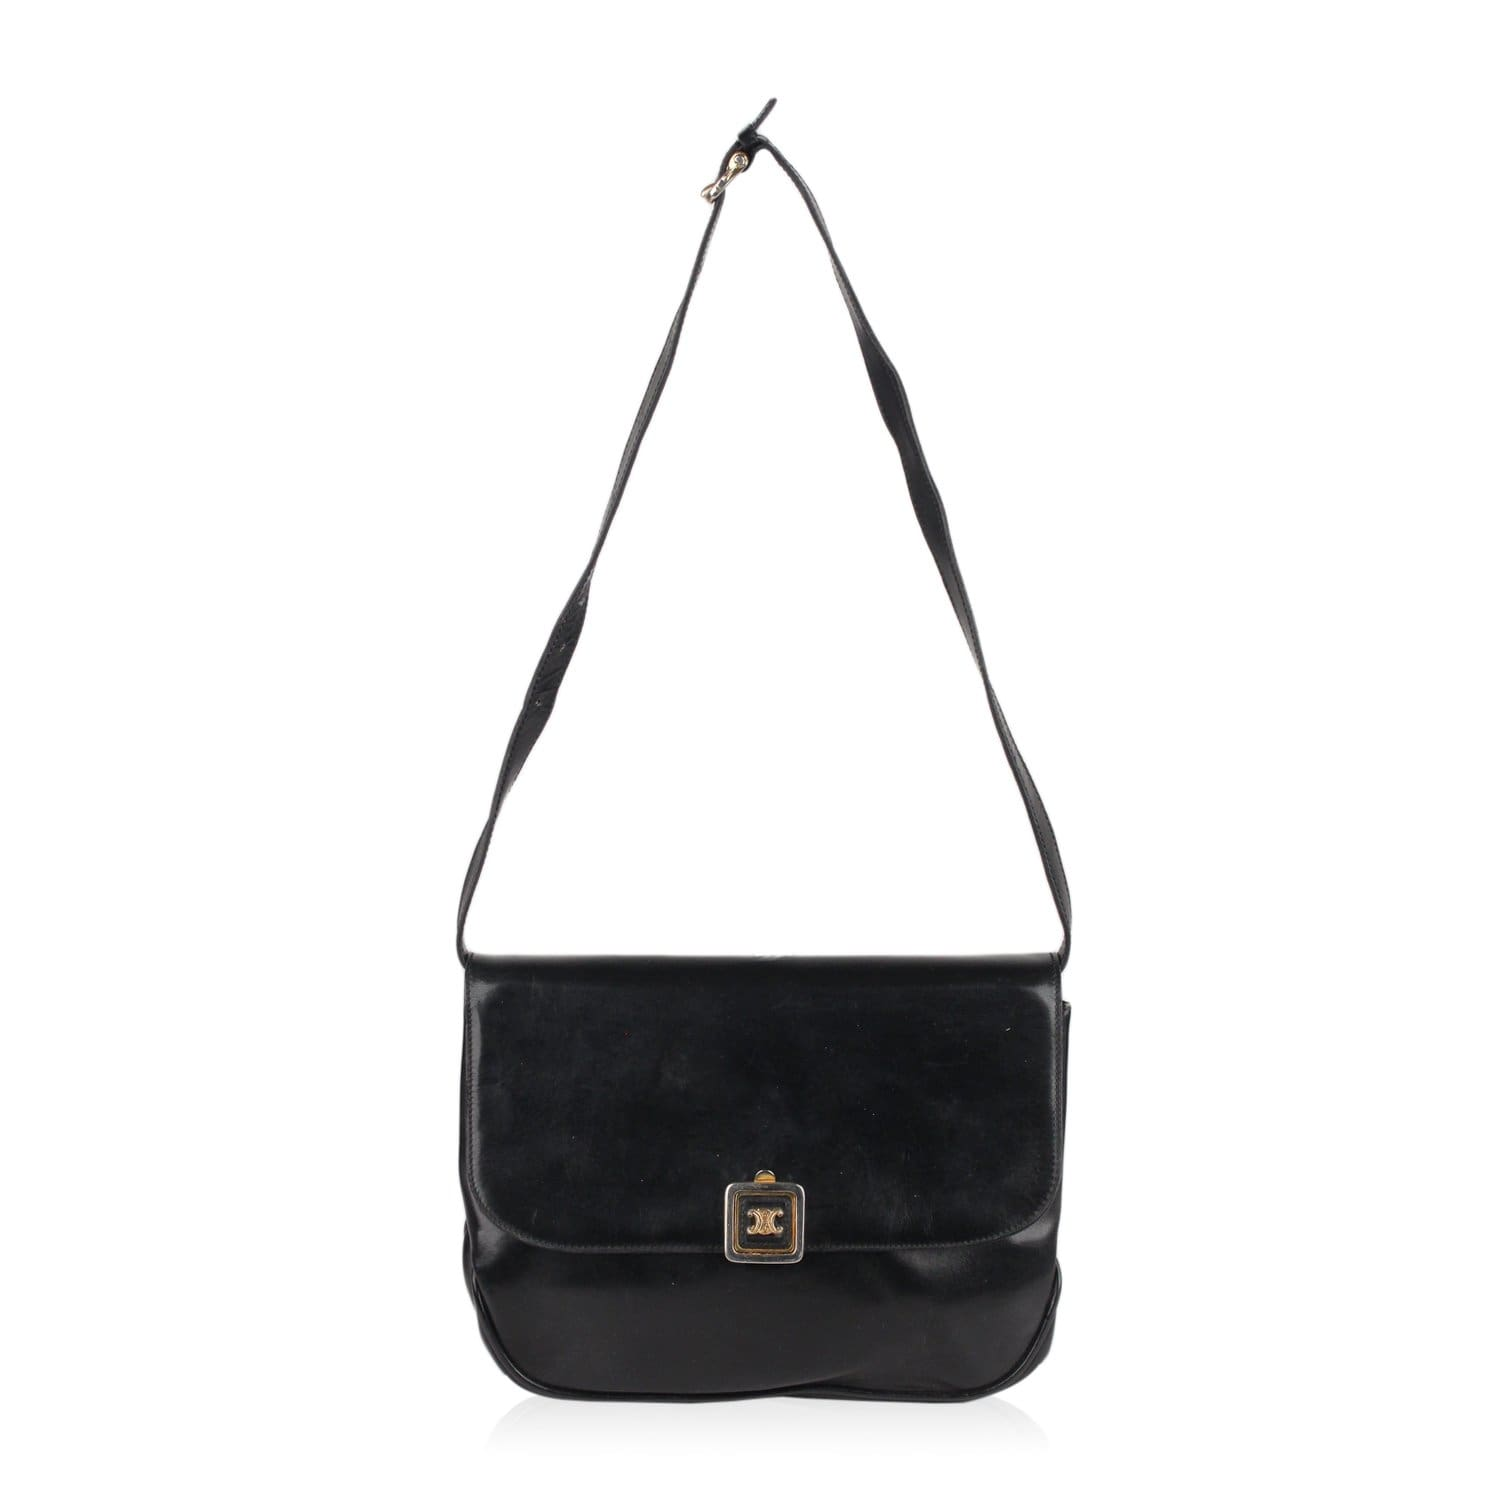 d952157f60 Enjoy Celine Vintage Shoulder Bag at OPHERTYCIOCCI – OPHERTY   CIOCCI